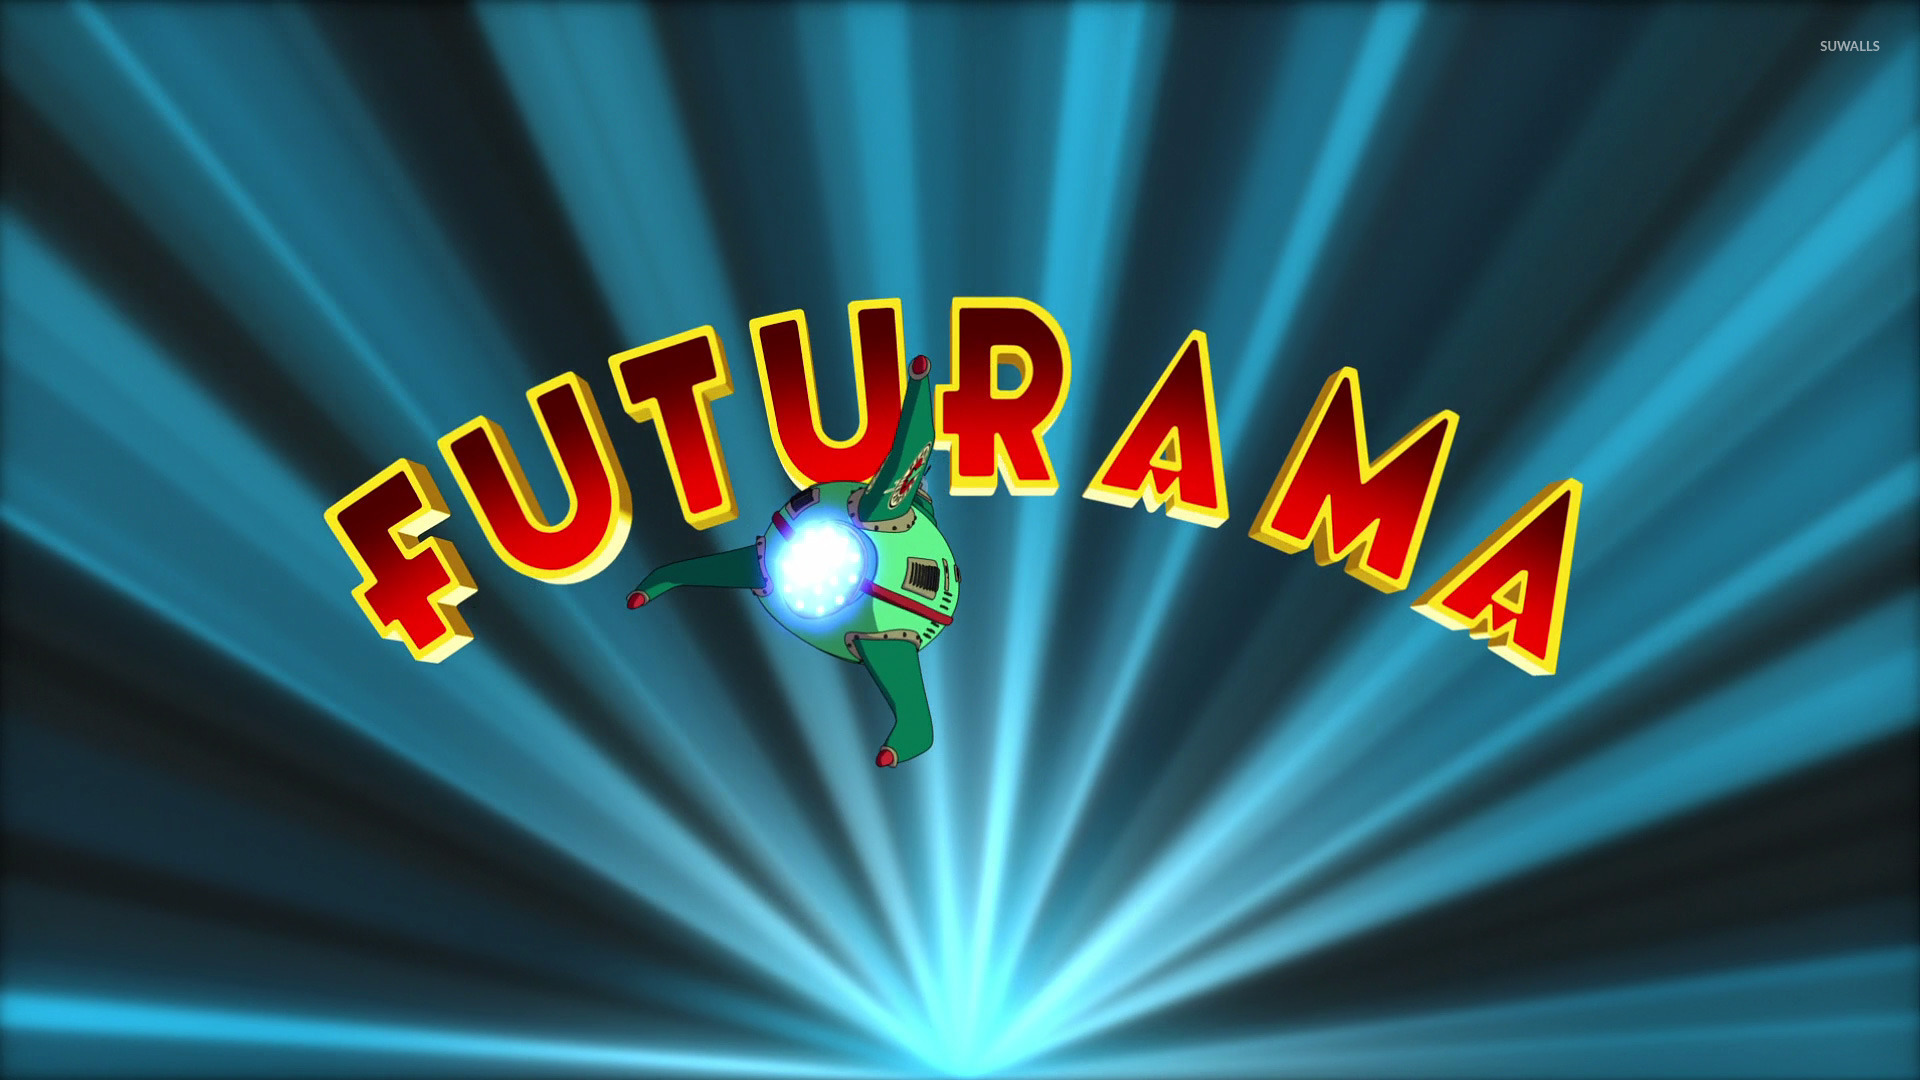 Futurama [5] wallpaper